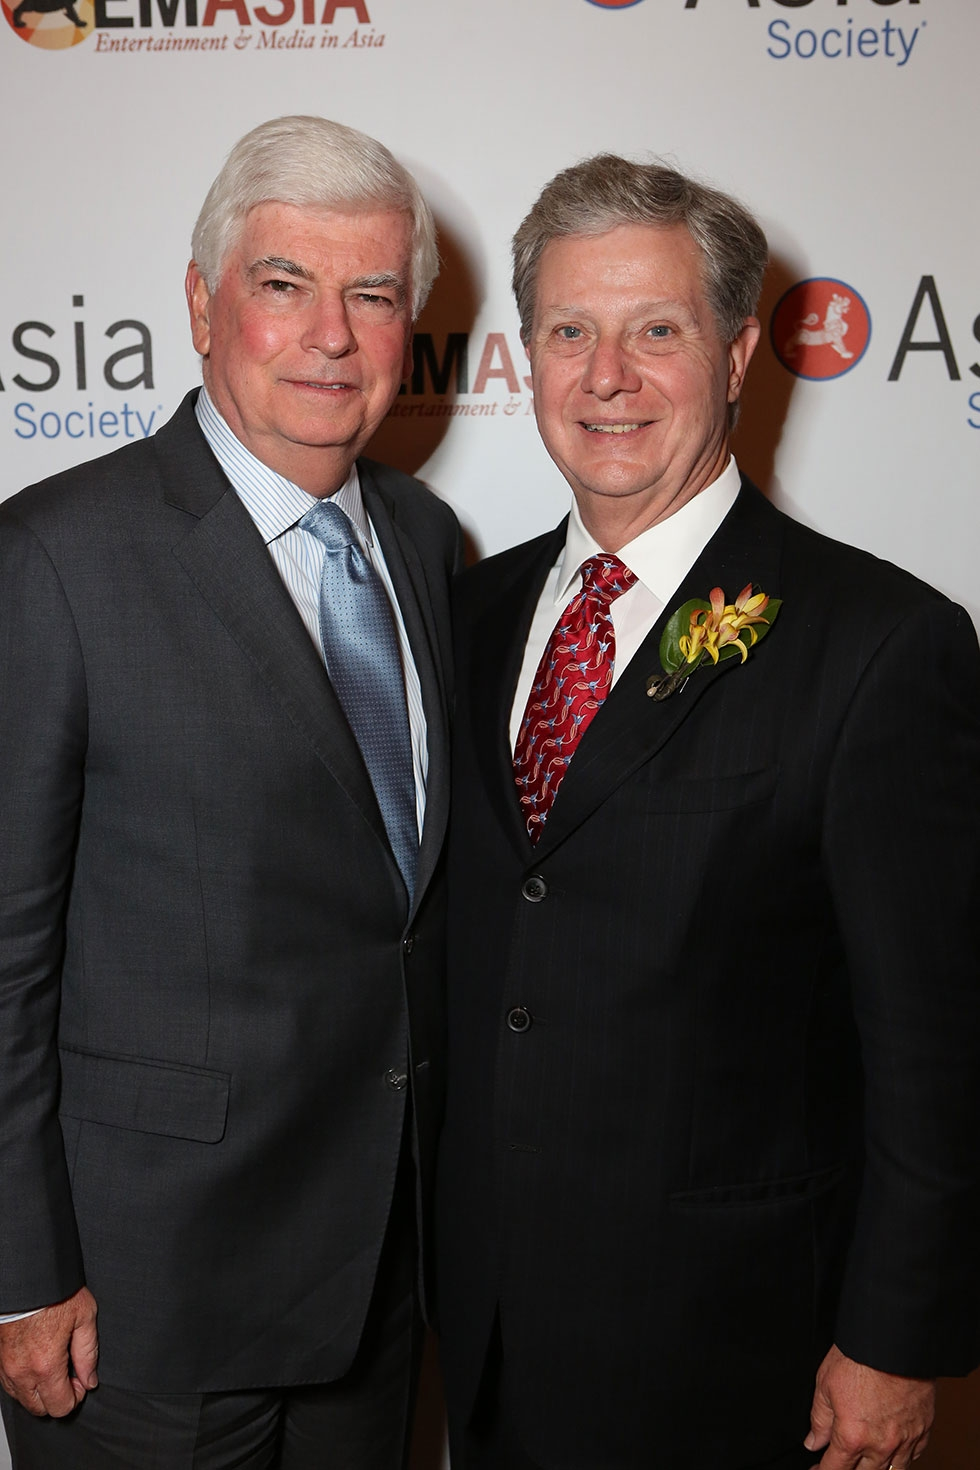 From left, Christopher Dodd, Chairman and CEO, Motion Picture Association of America and Thomas McLain, Chair, Asia Society Southern California pose during the 2013 Asia Society U.S.-China Film Summit and Gala held at the Millennium Biltmore Hotel on Tuesday, November 5, 2013, in Los Angeles, Calif. (Photo by Ryan Miller/Capture Imaging)